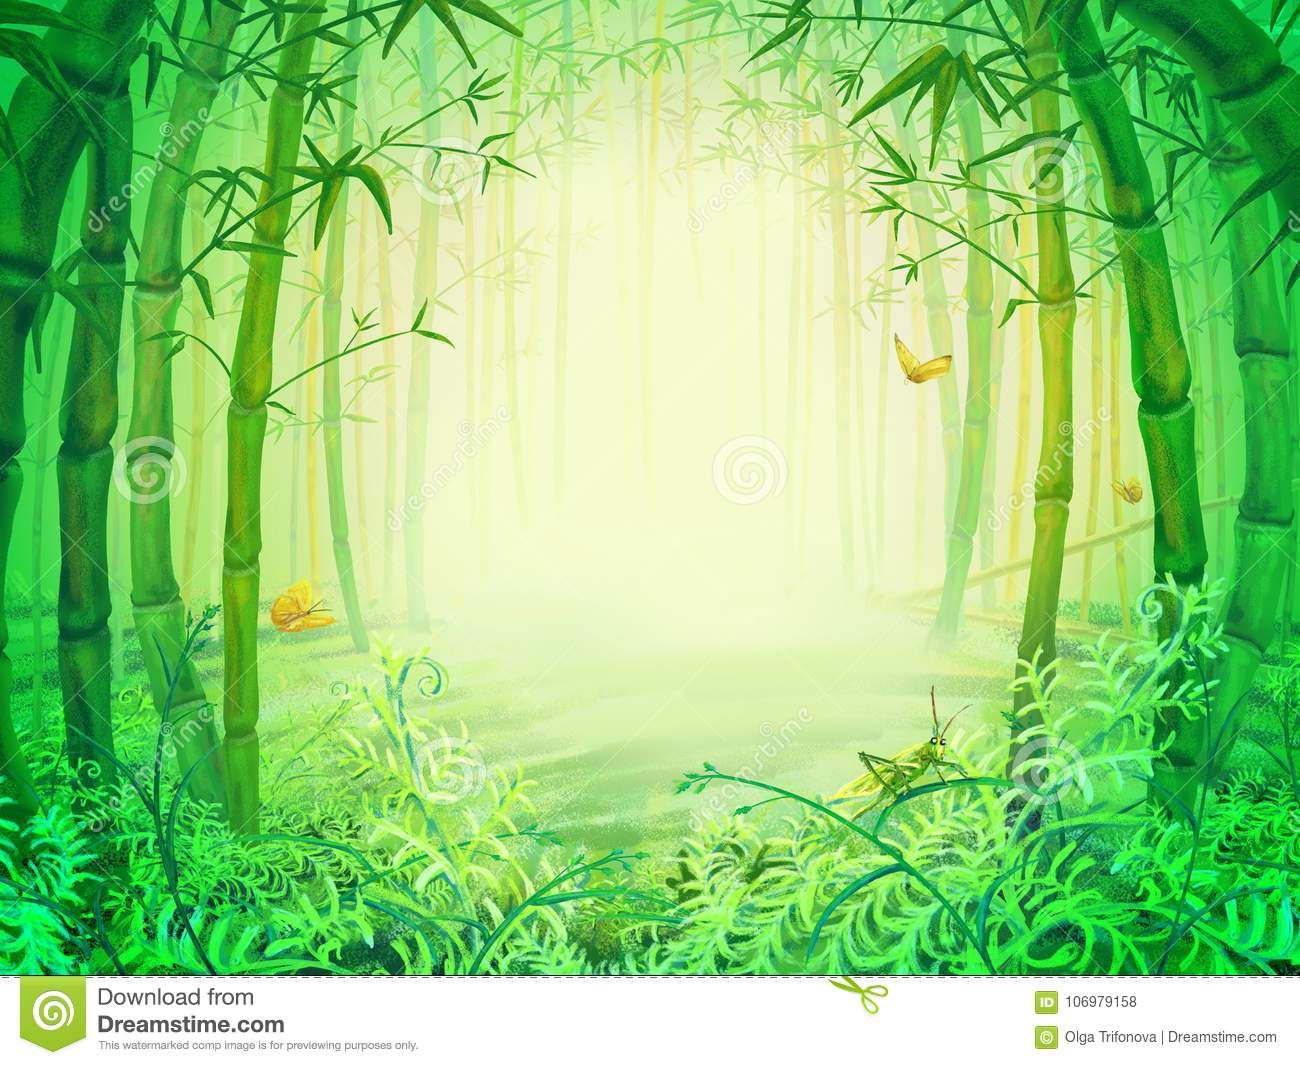 Green bamboo trees inside the forest